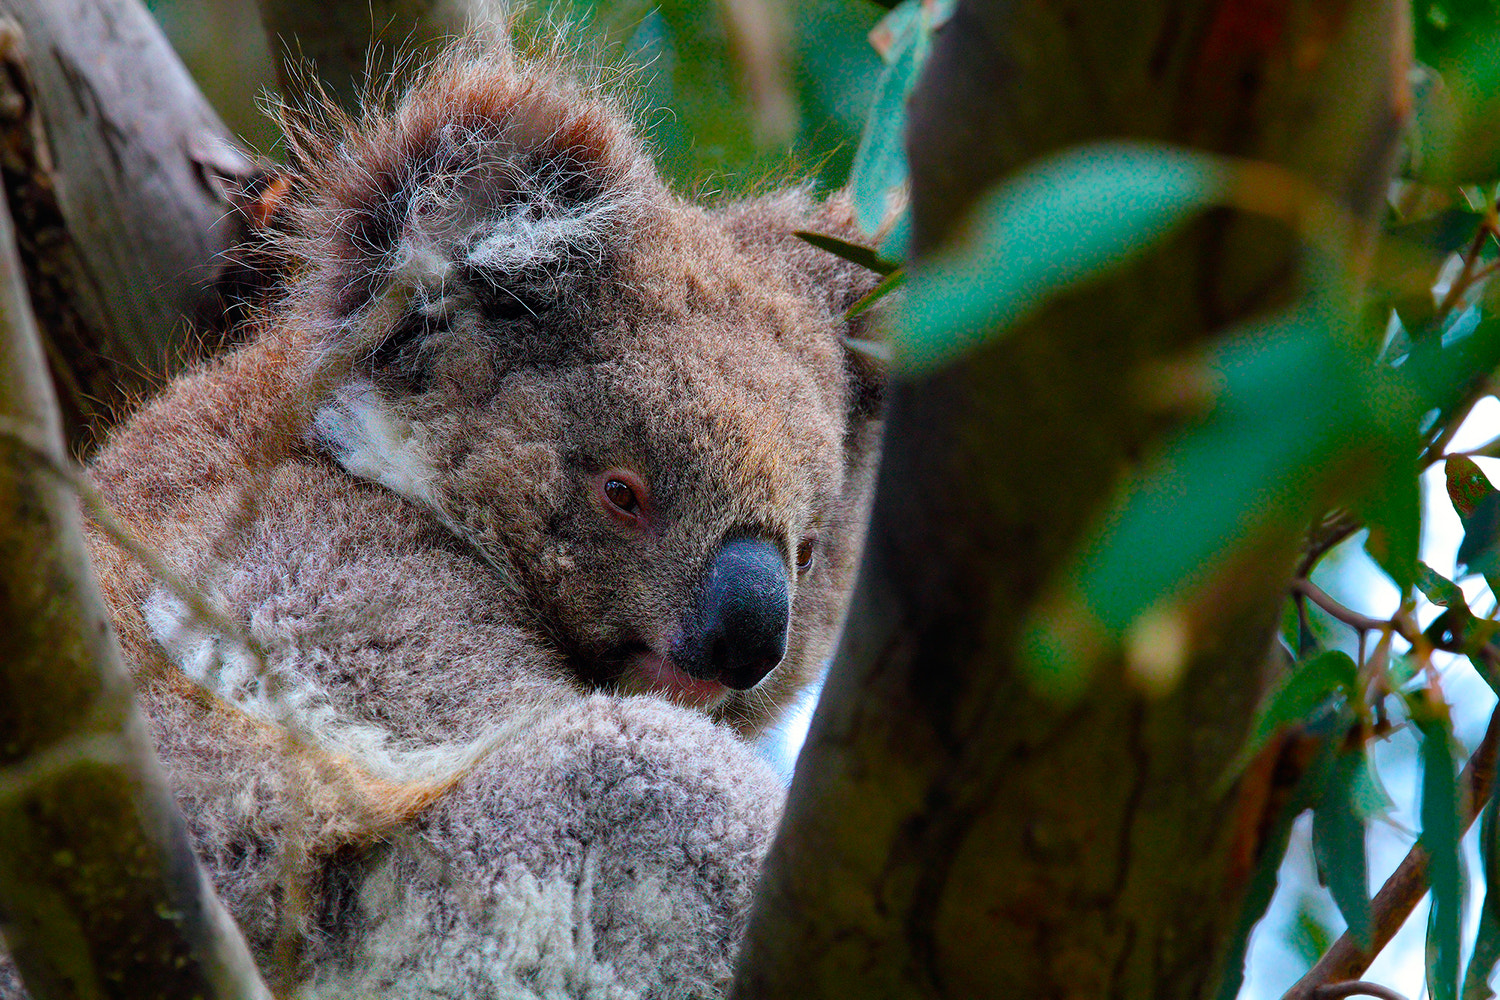 Photograph Koala,Kangaroo Island,South Australia by Paolo Guidetti on 500px